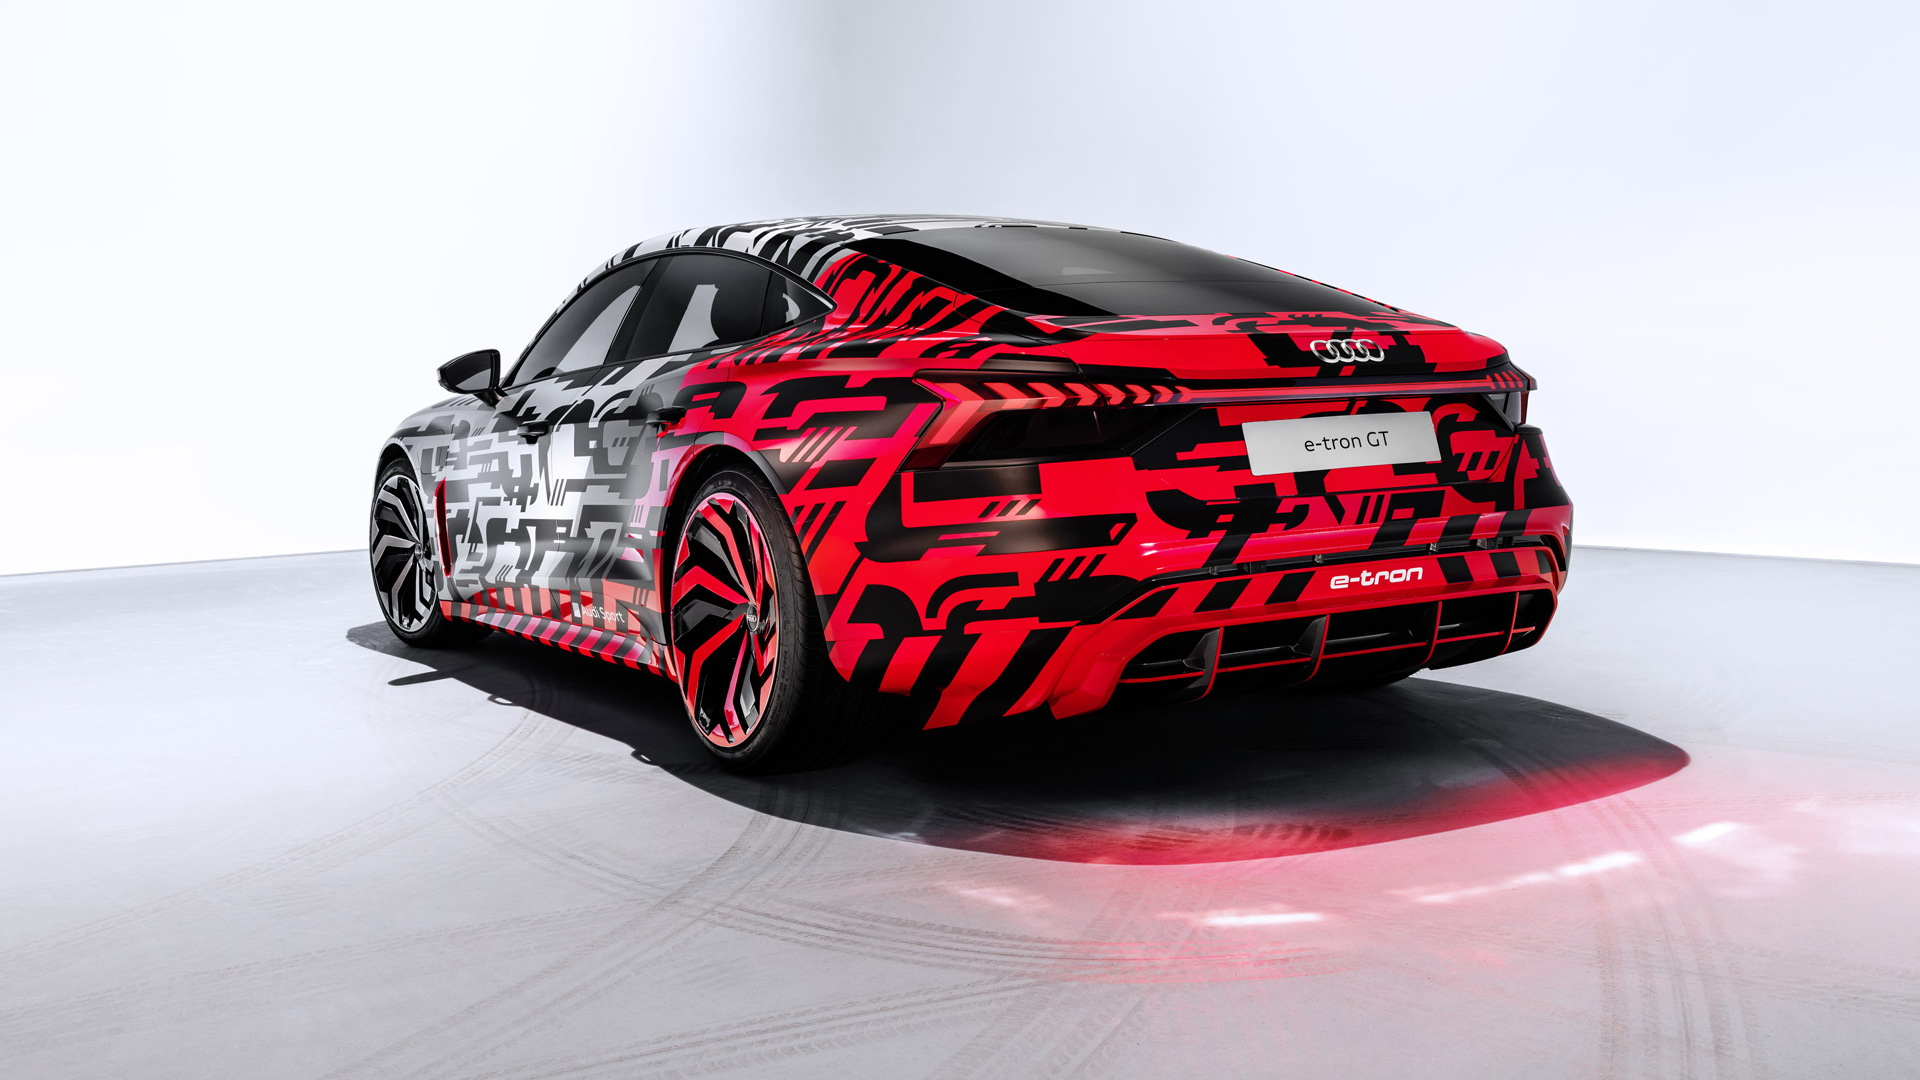 Teaser for Audi e-tron GT concept debuting at 2018 Los Angeles auto show